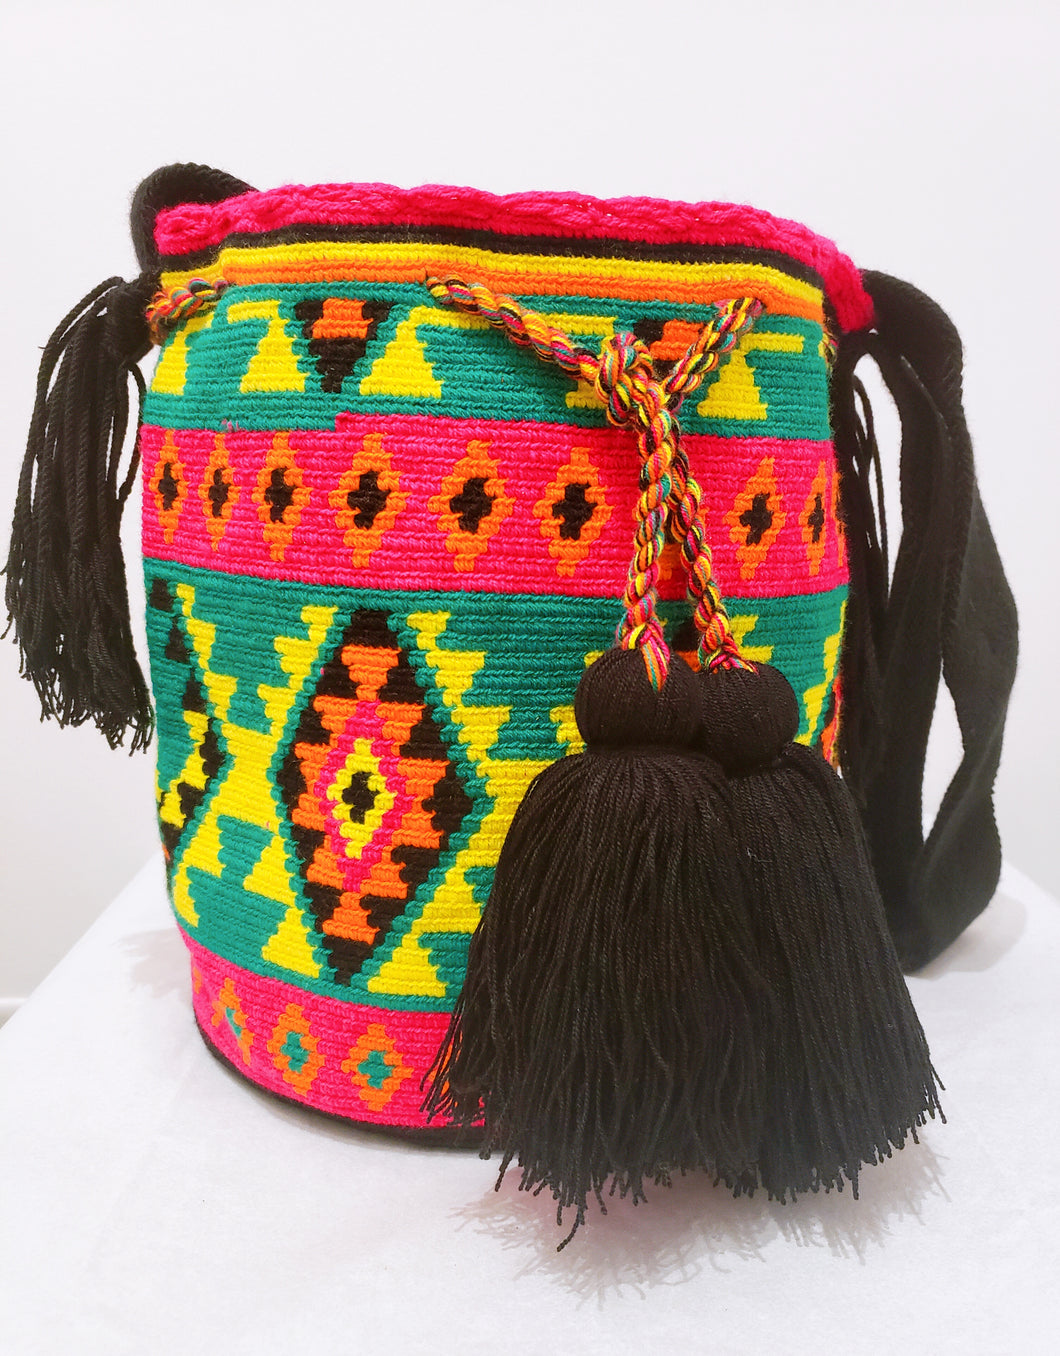 Tradition Handmade Wayuu Mochila Bag - Wuitusu